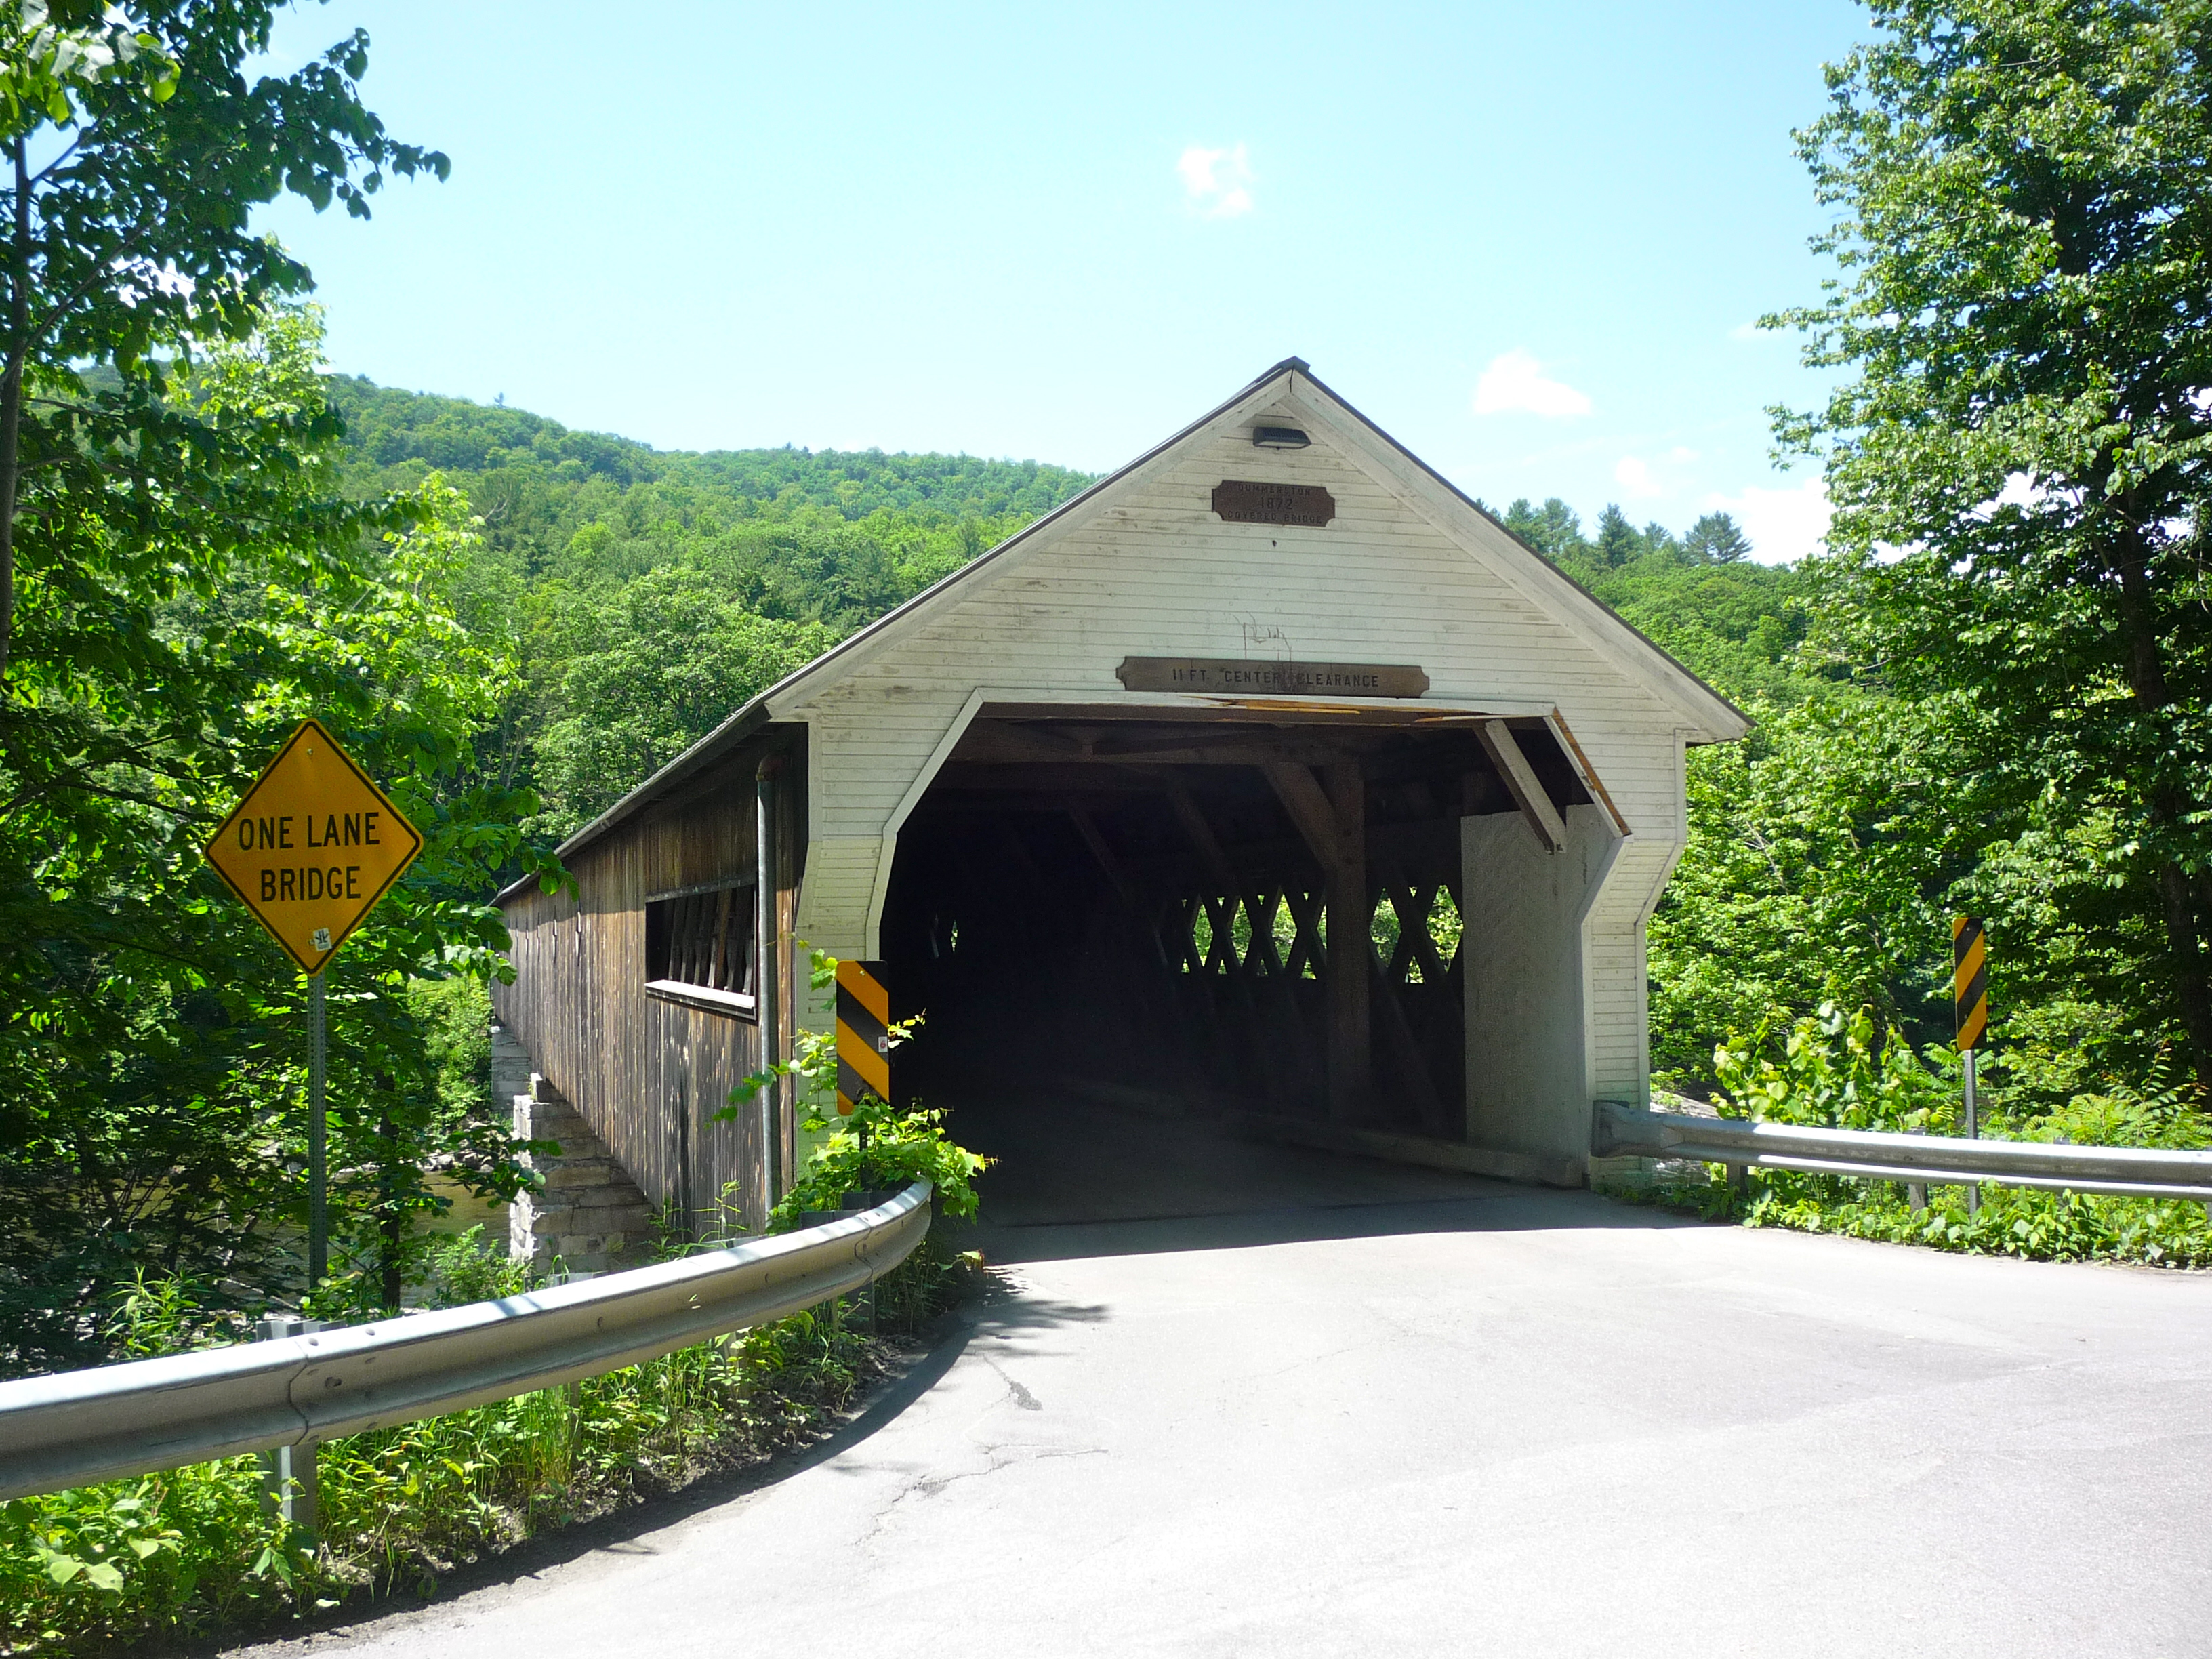 Picture of Dummerston Covered Bridge, Dummerston VT